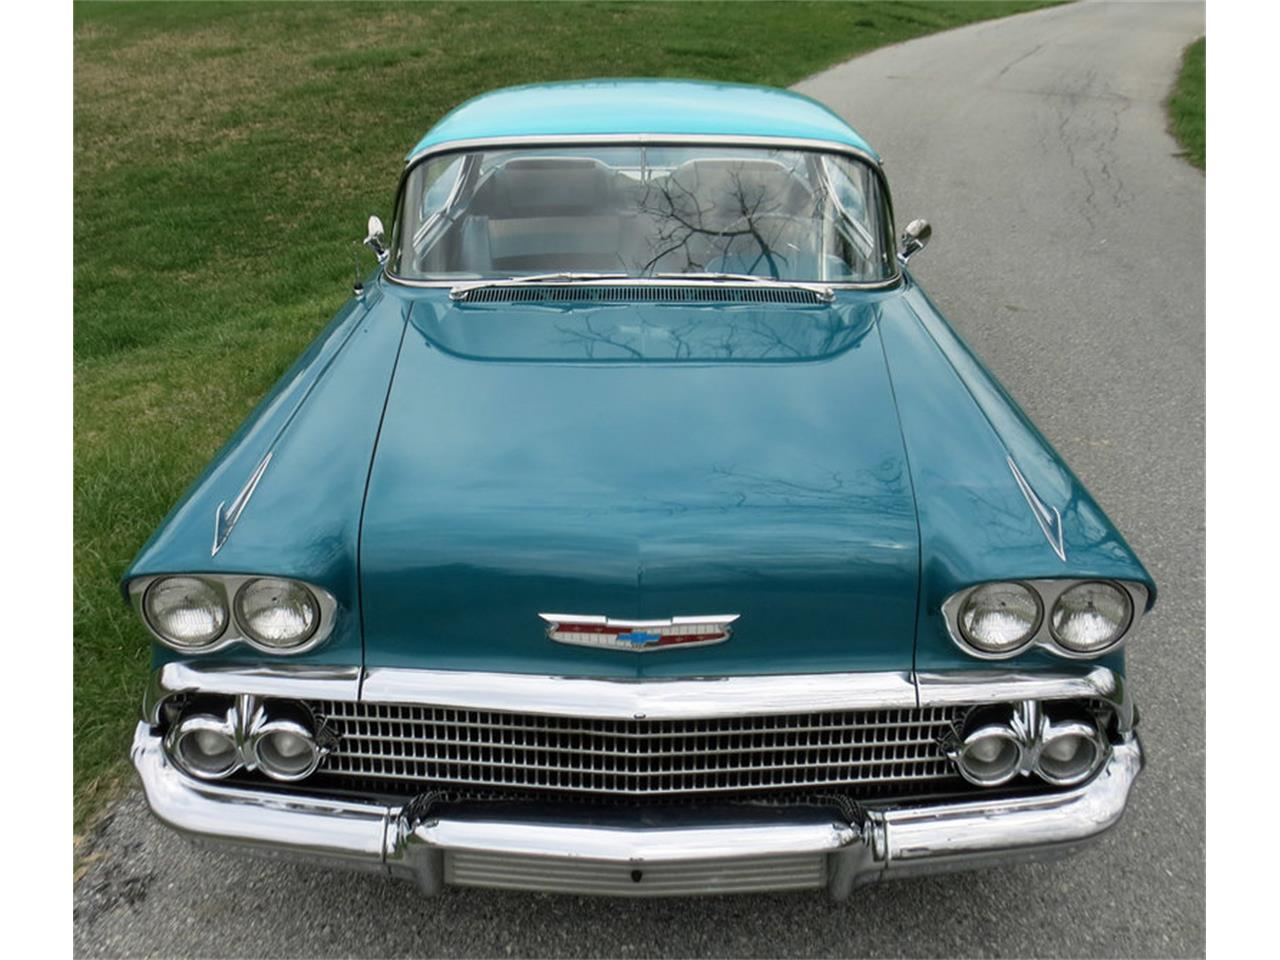 Large Picture of Classic '58 Impala located in West Chester Pennsylvania - $45,000.00 Offered by Connors Motorcar Company - LRM8